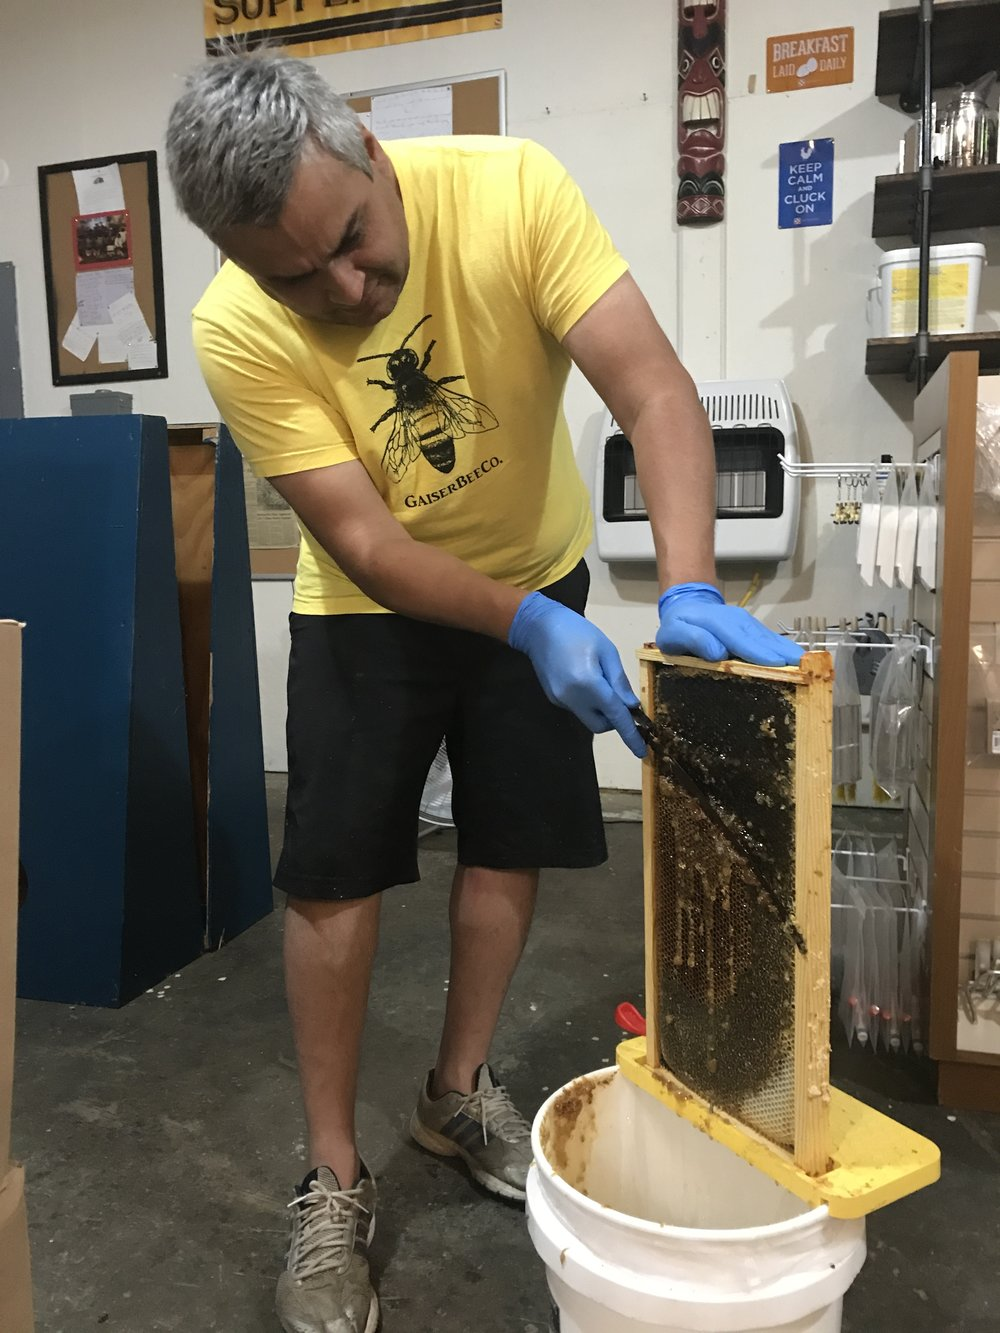 Host A Hive Gaiser Bee Co.